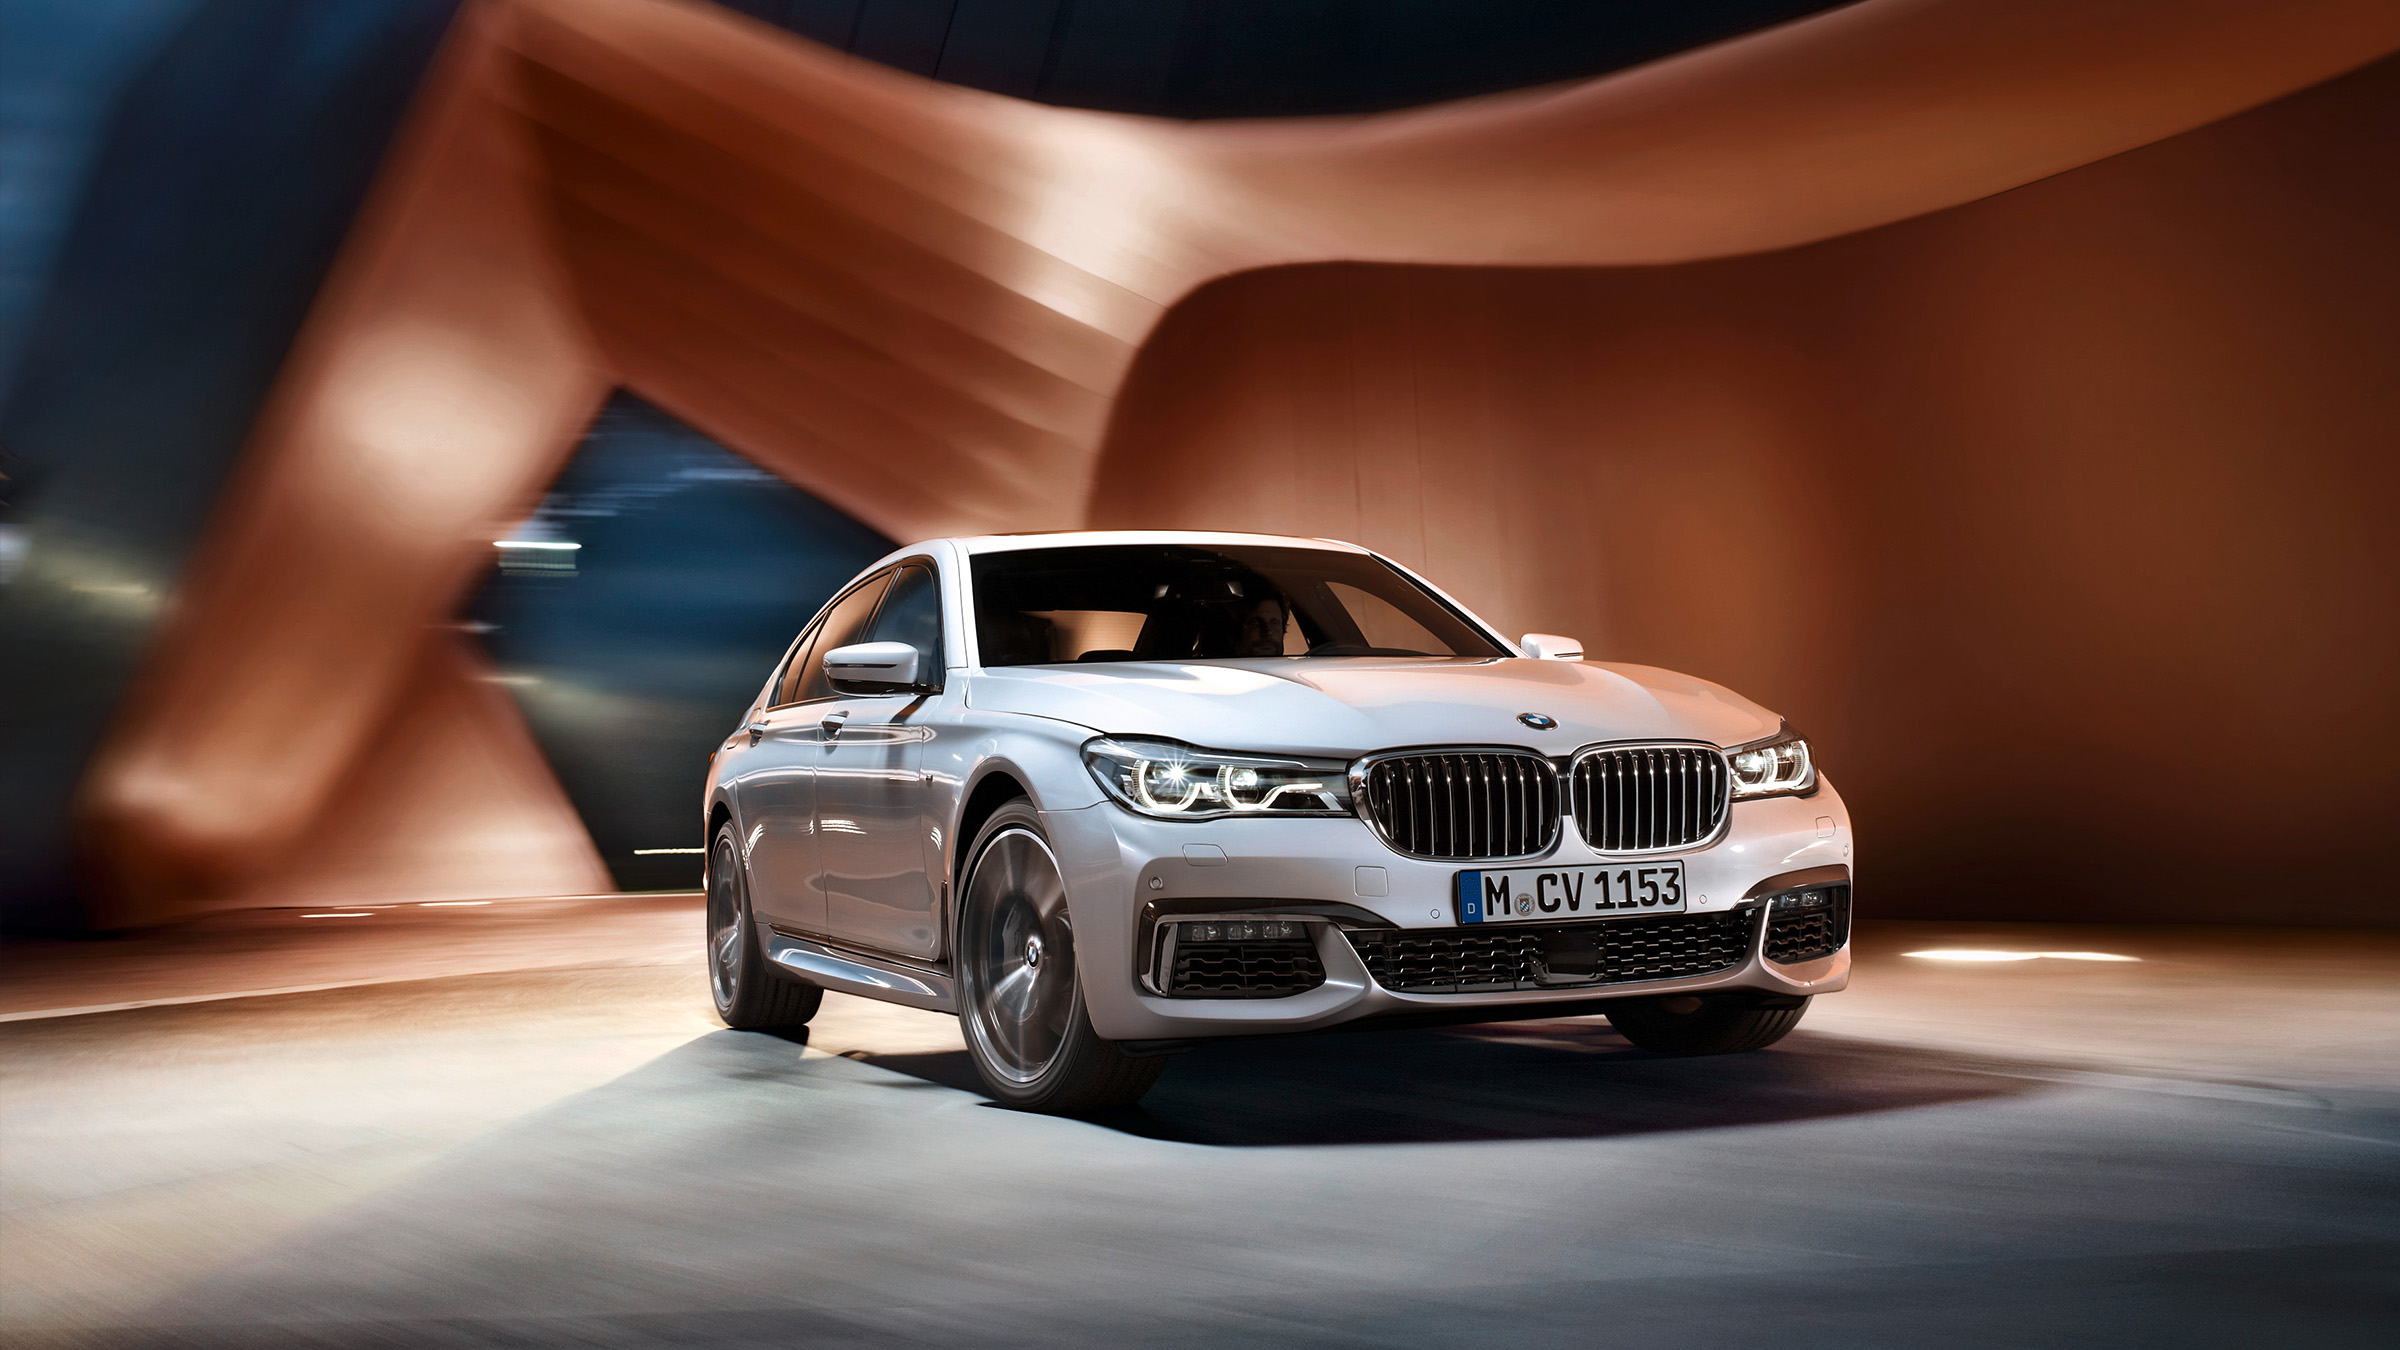 BMW_7ER_EMIR_HAVERIC_09_2400